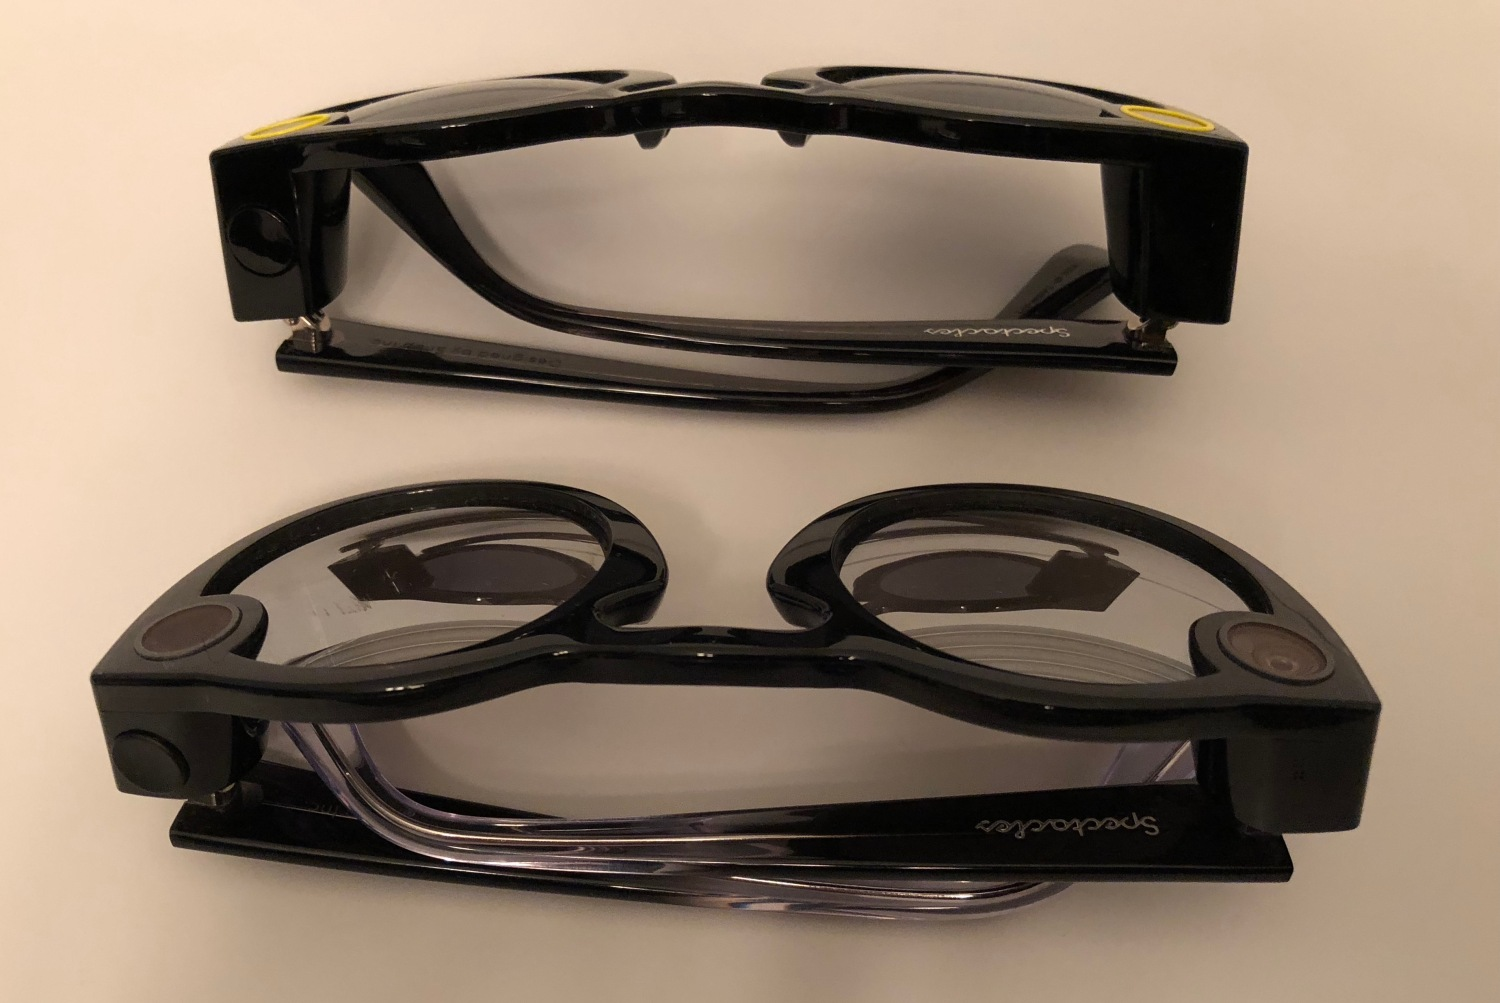 519f9d17848c Snapchat Spectacles hardware v1 vs v2